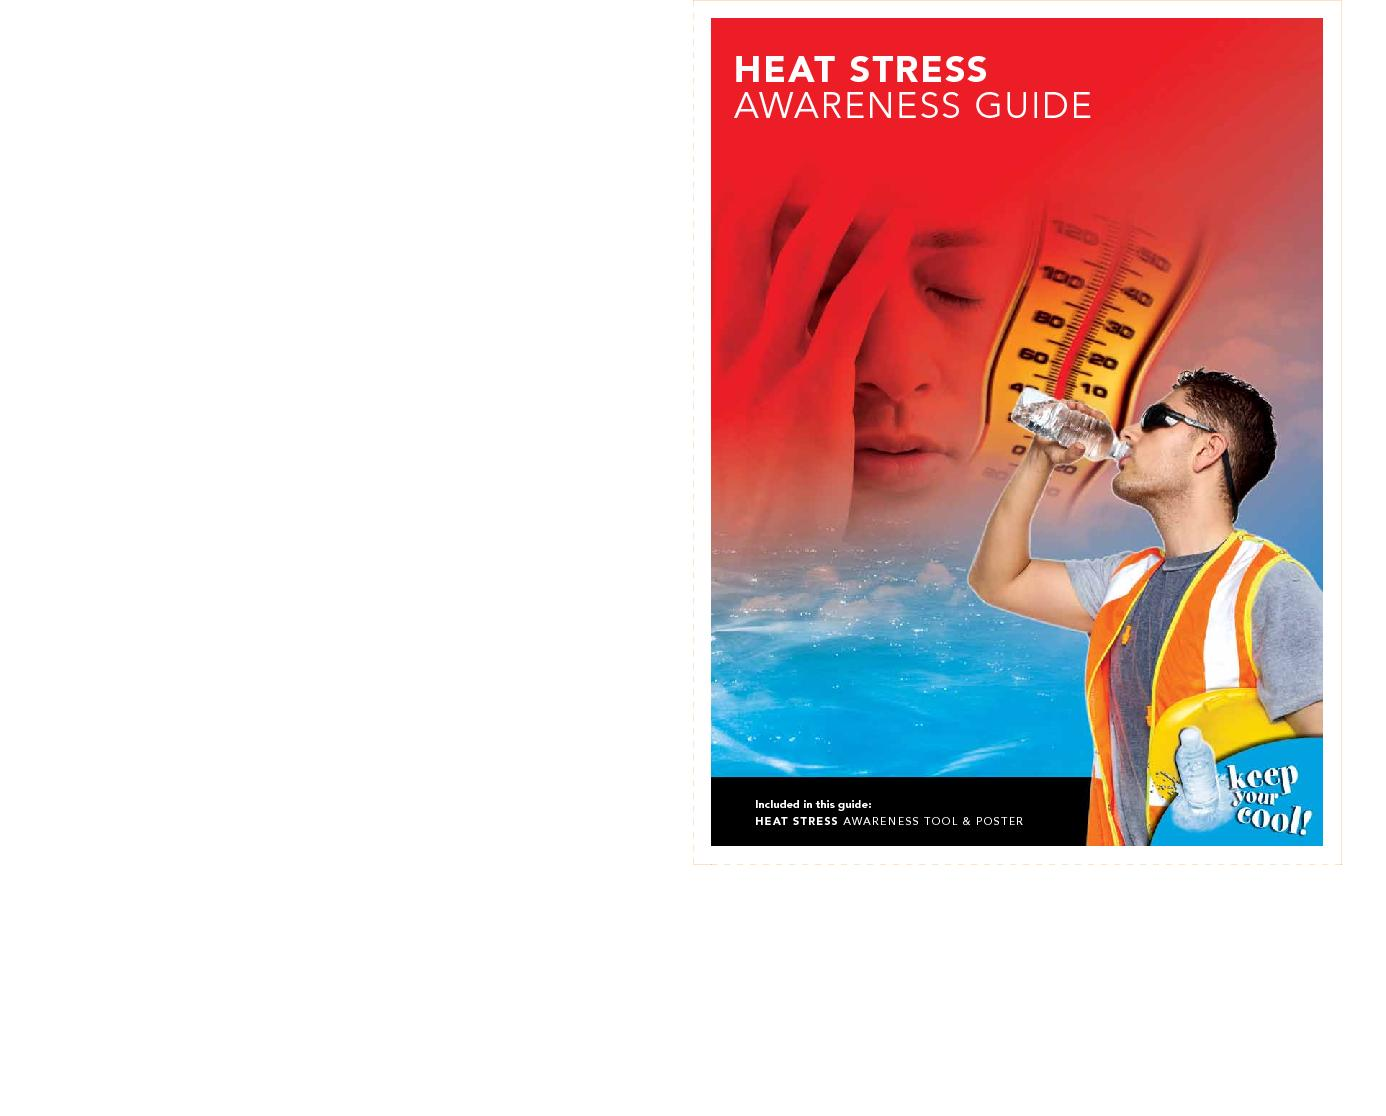 HEAT STRESS AWARENESS GUIDEIncluded in this guide:HEAT STRESS AWARENES